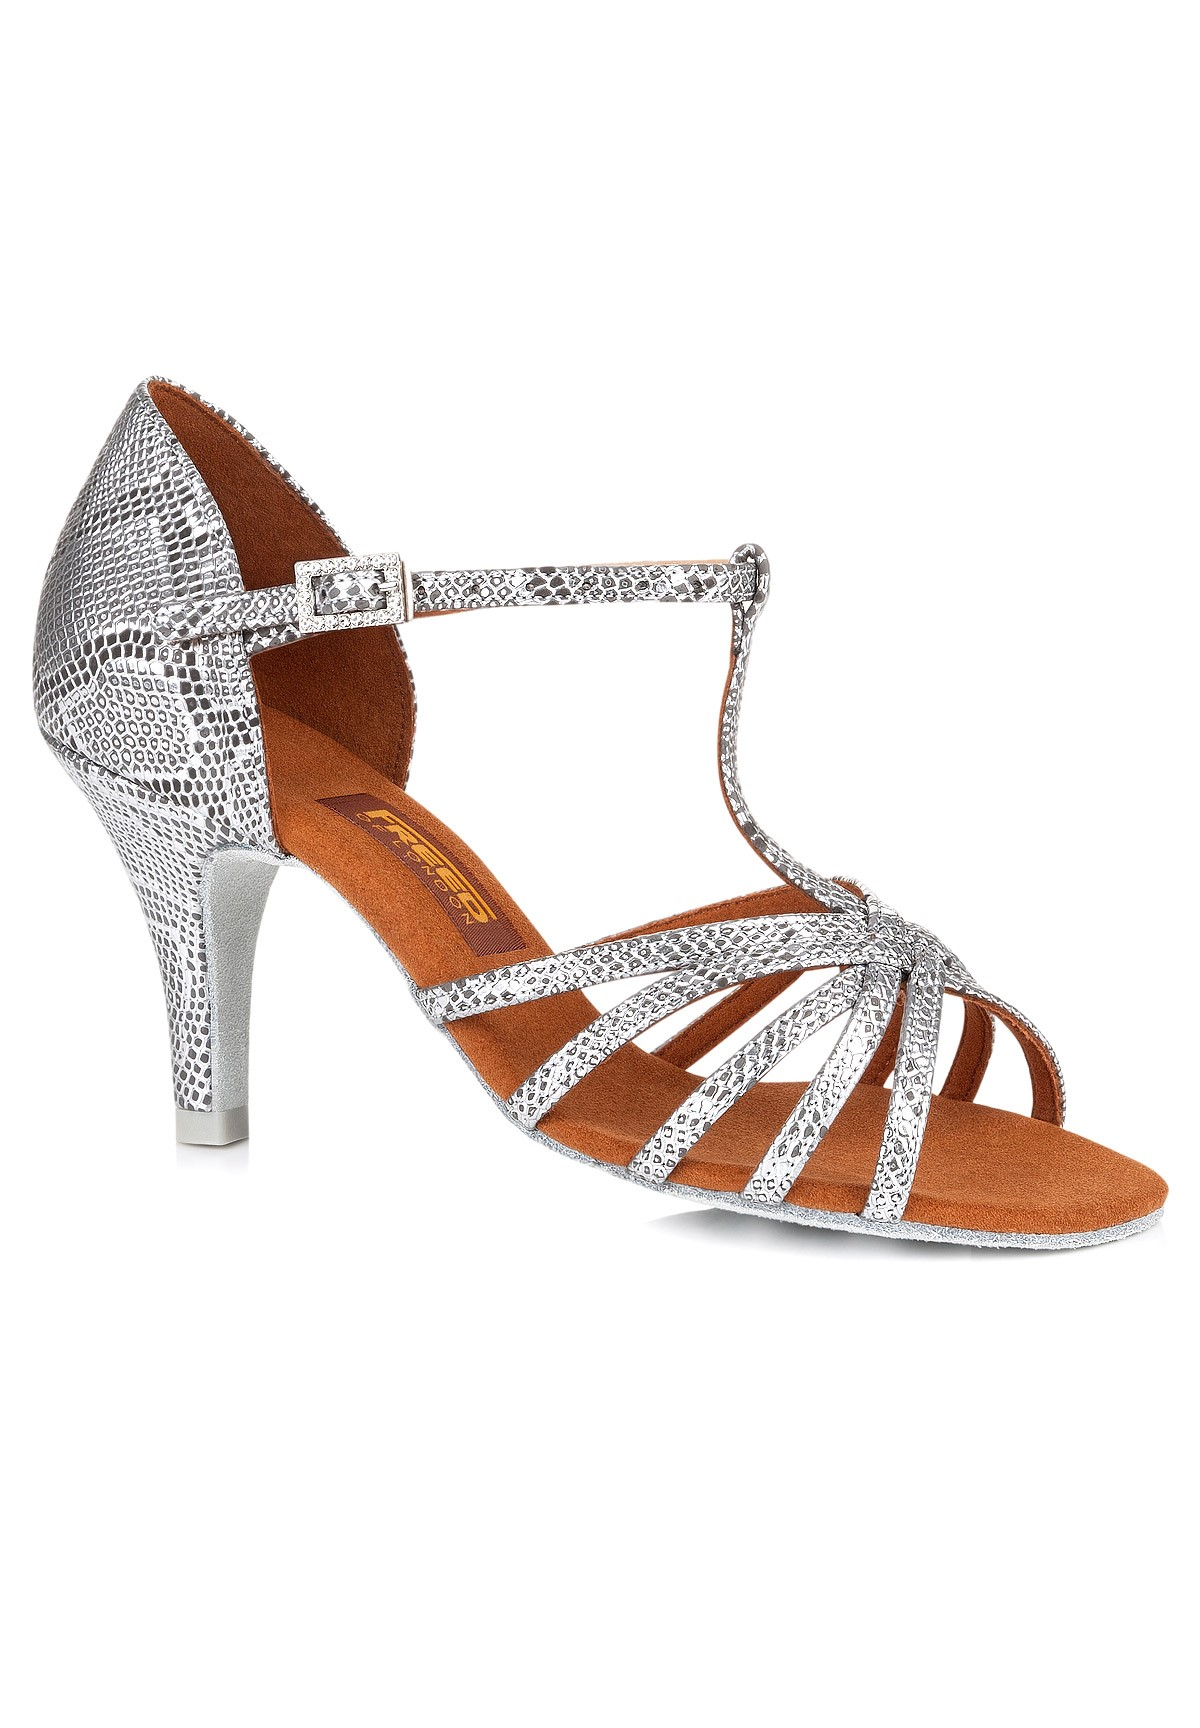 reputable site c3550 ac929 Freed of London Diva Latin Dance Shoes | Latin Dance Shoes